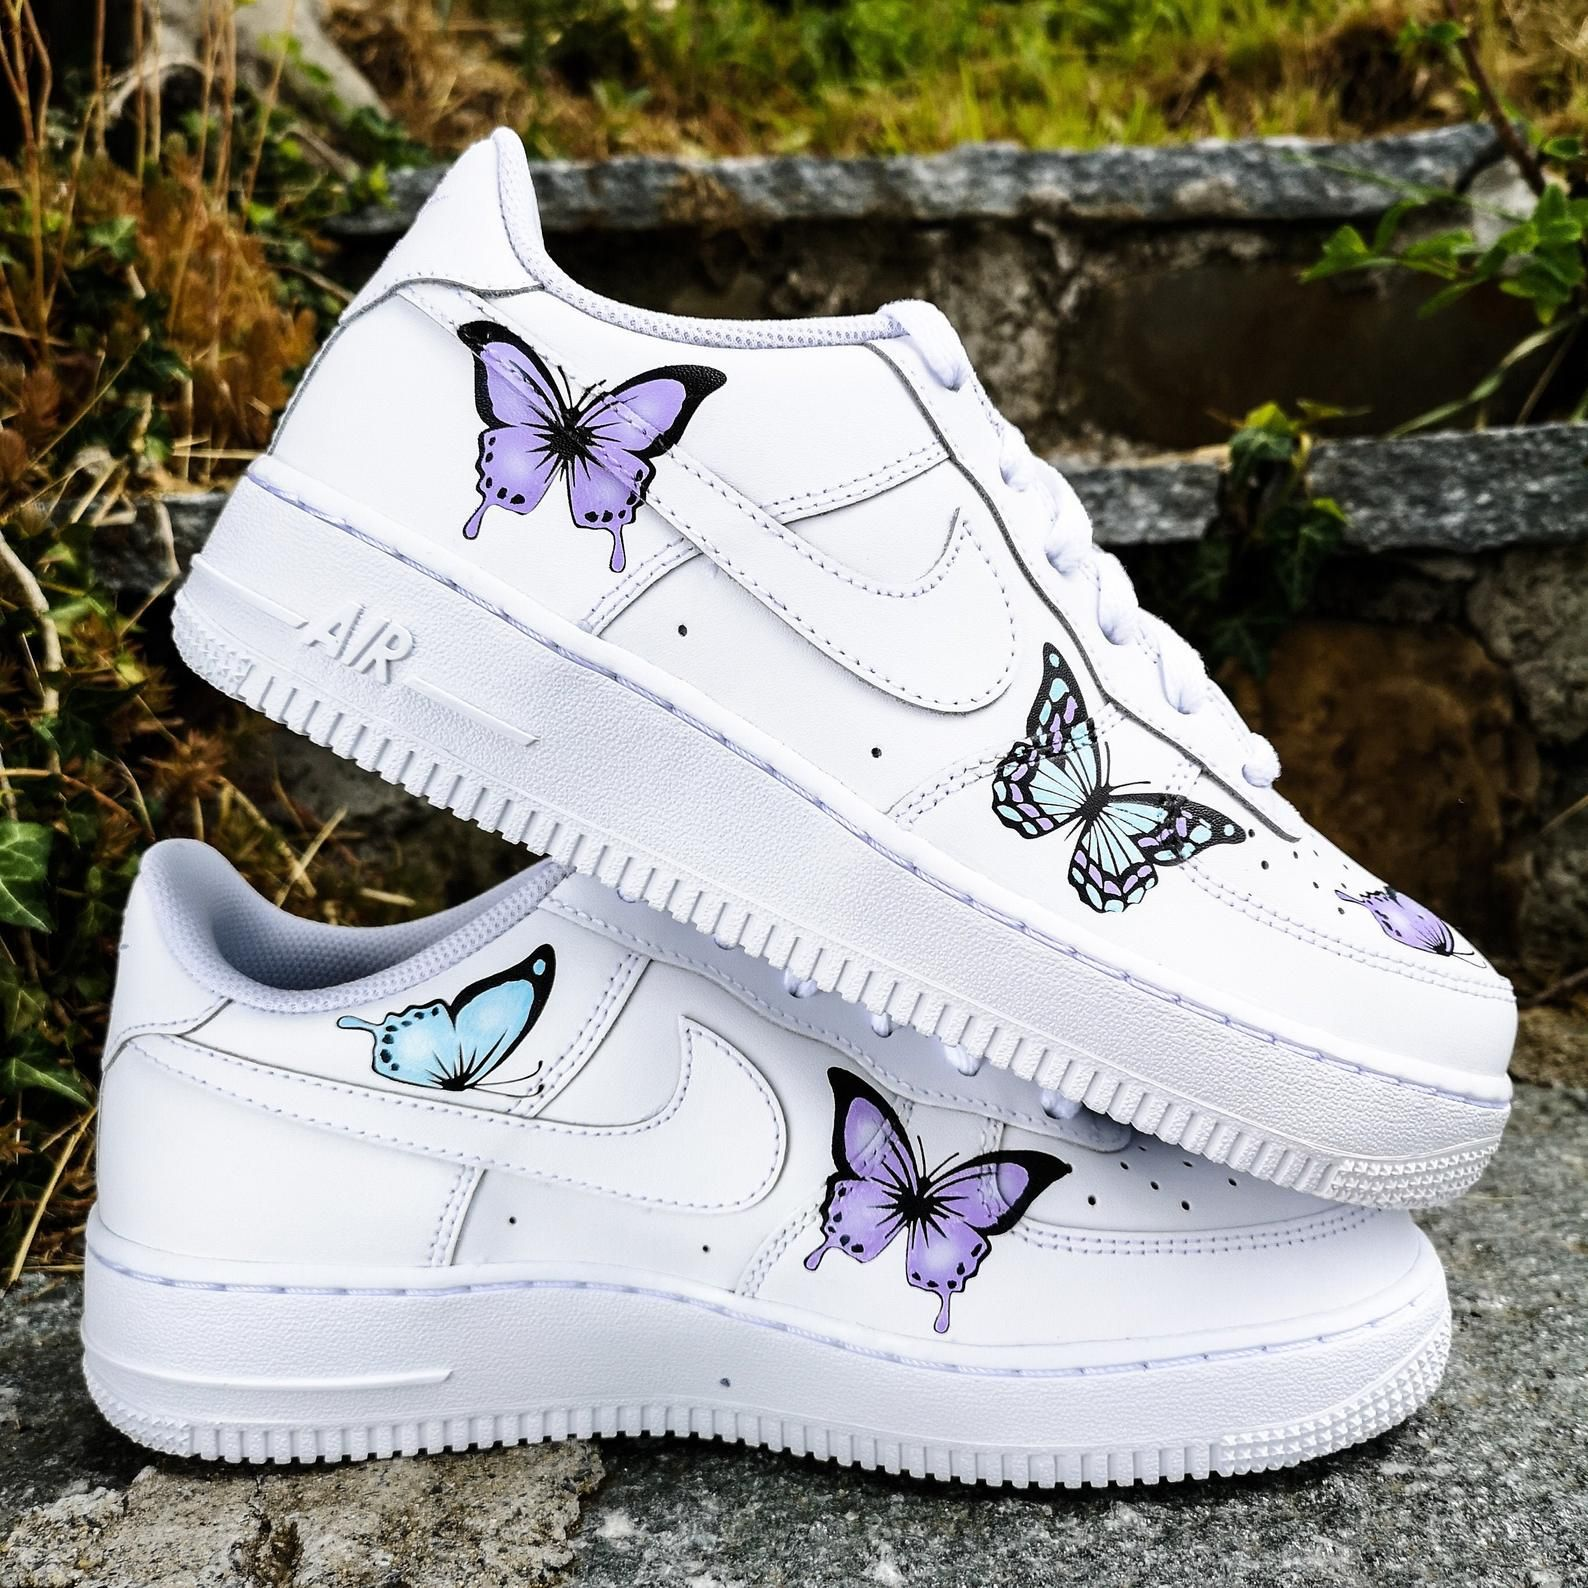 Personnalises Nike Air Force 1 Papillons In 2020 White Nike Shoes Nike Shoes Outfits Nike Air Shoes